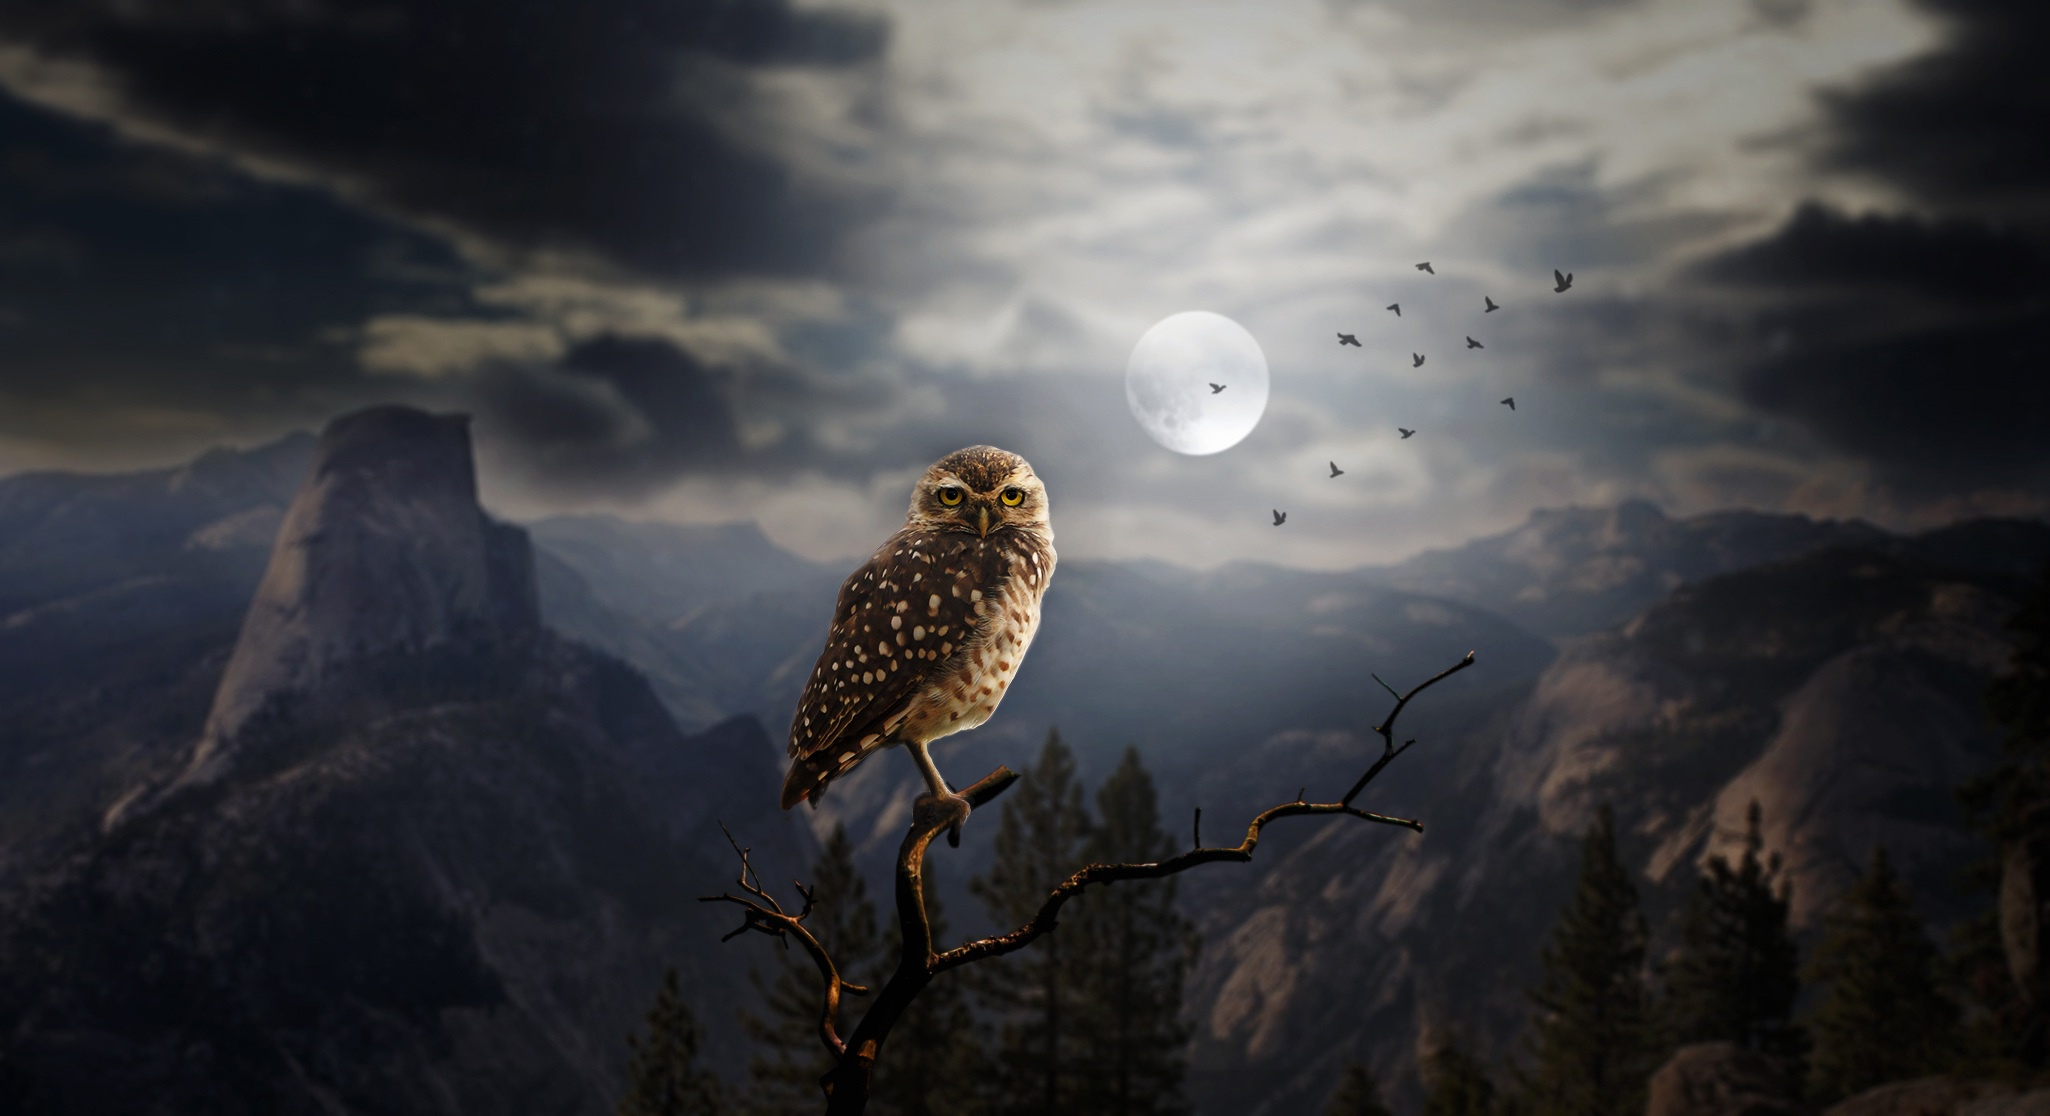 moon fantasy owl, hd others, 4k wallpapers, images, backgrounds